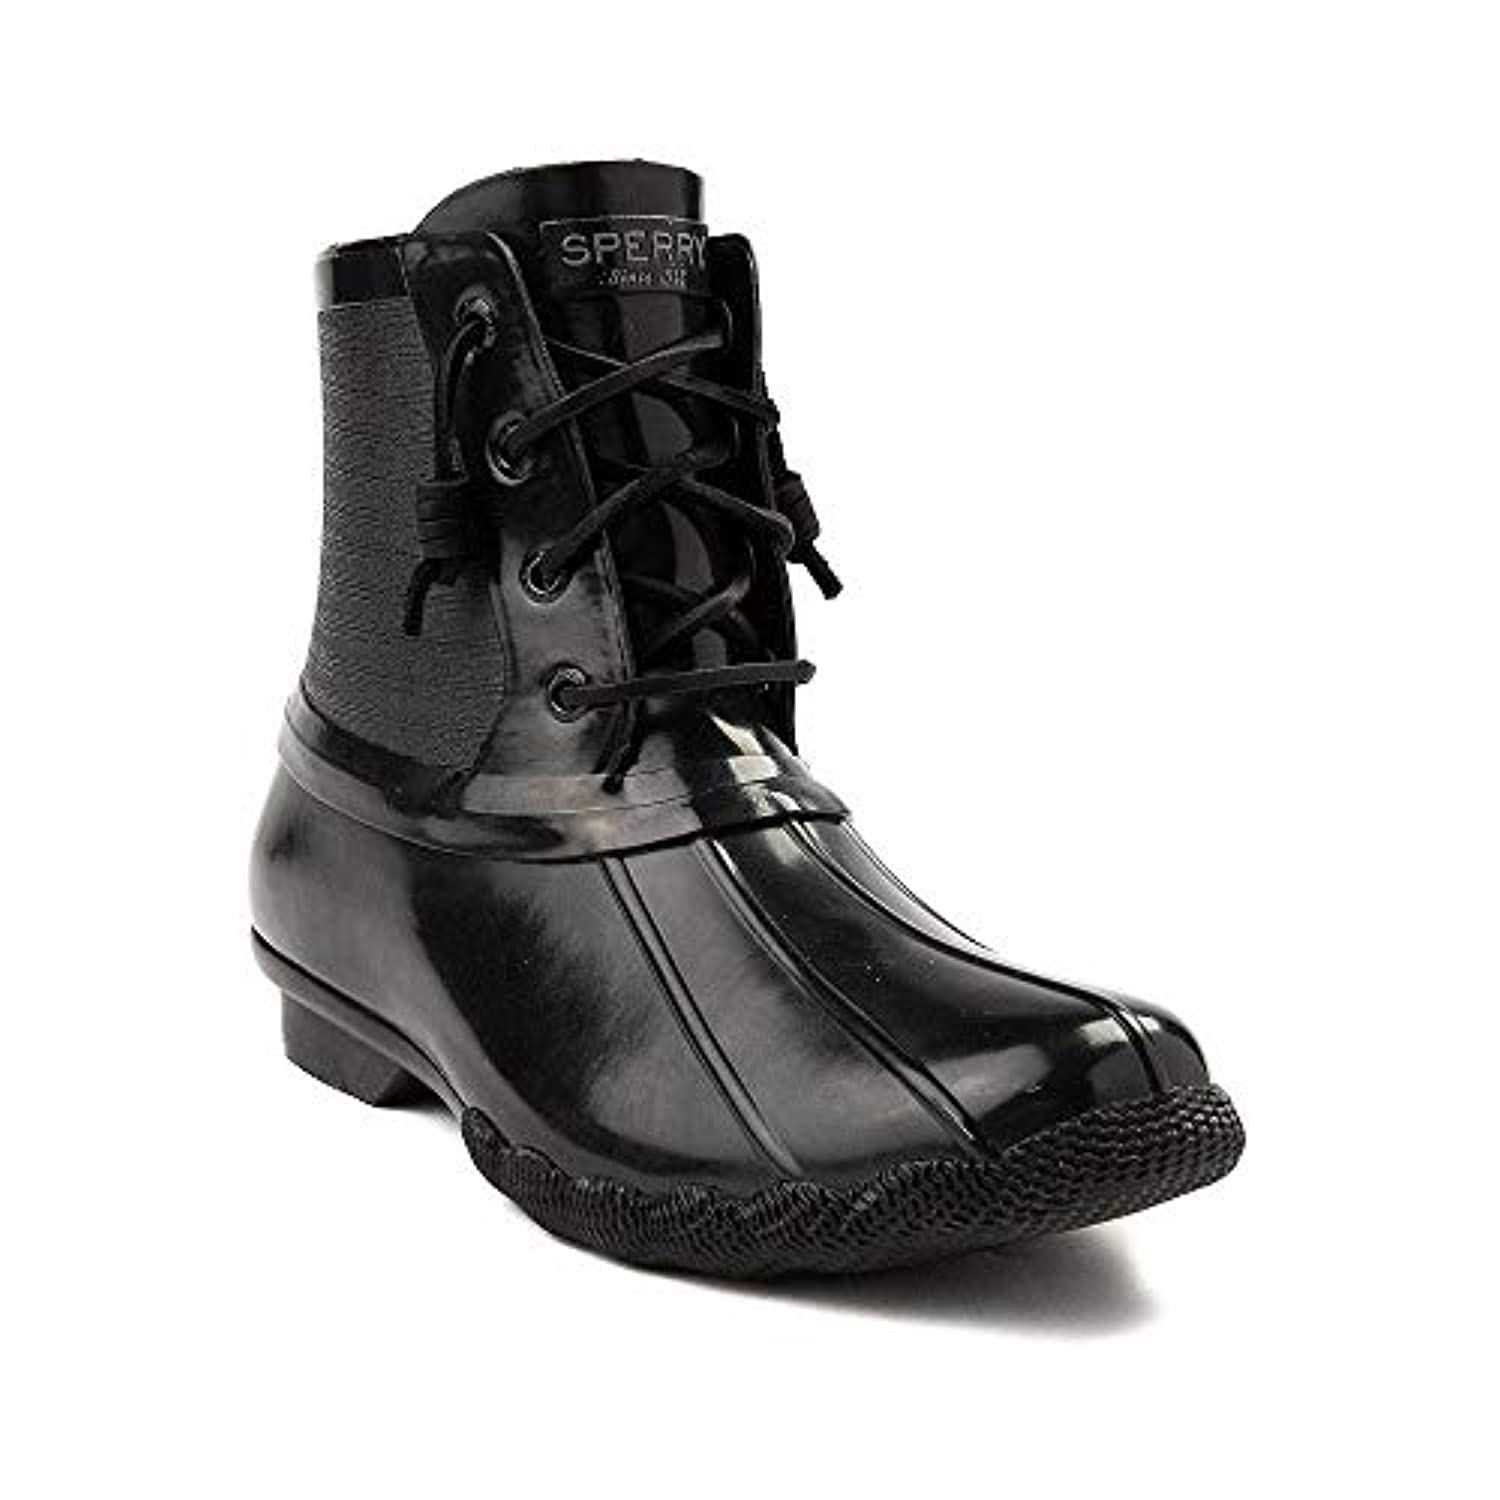 [SPERRY TOPSIDER(スペリートップサイダー)] 靴?シューズ レディースボートシューズ Womens Sperry Top-Sider Saltwater Flooded Duck Boot ブラック US...